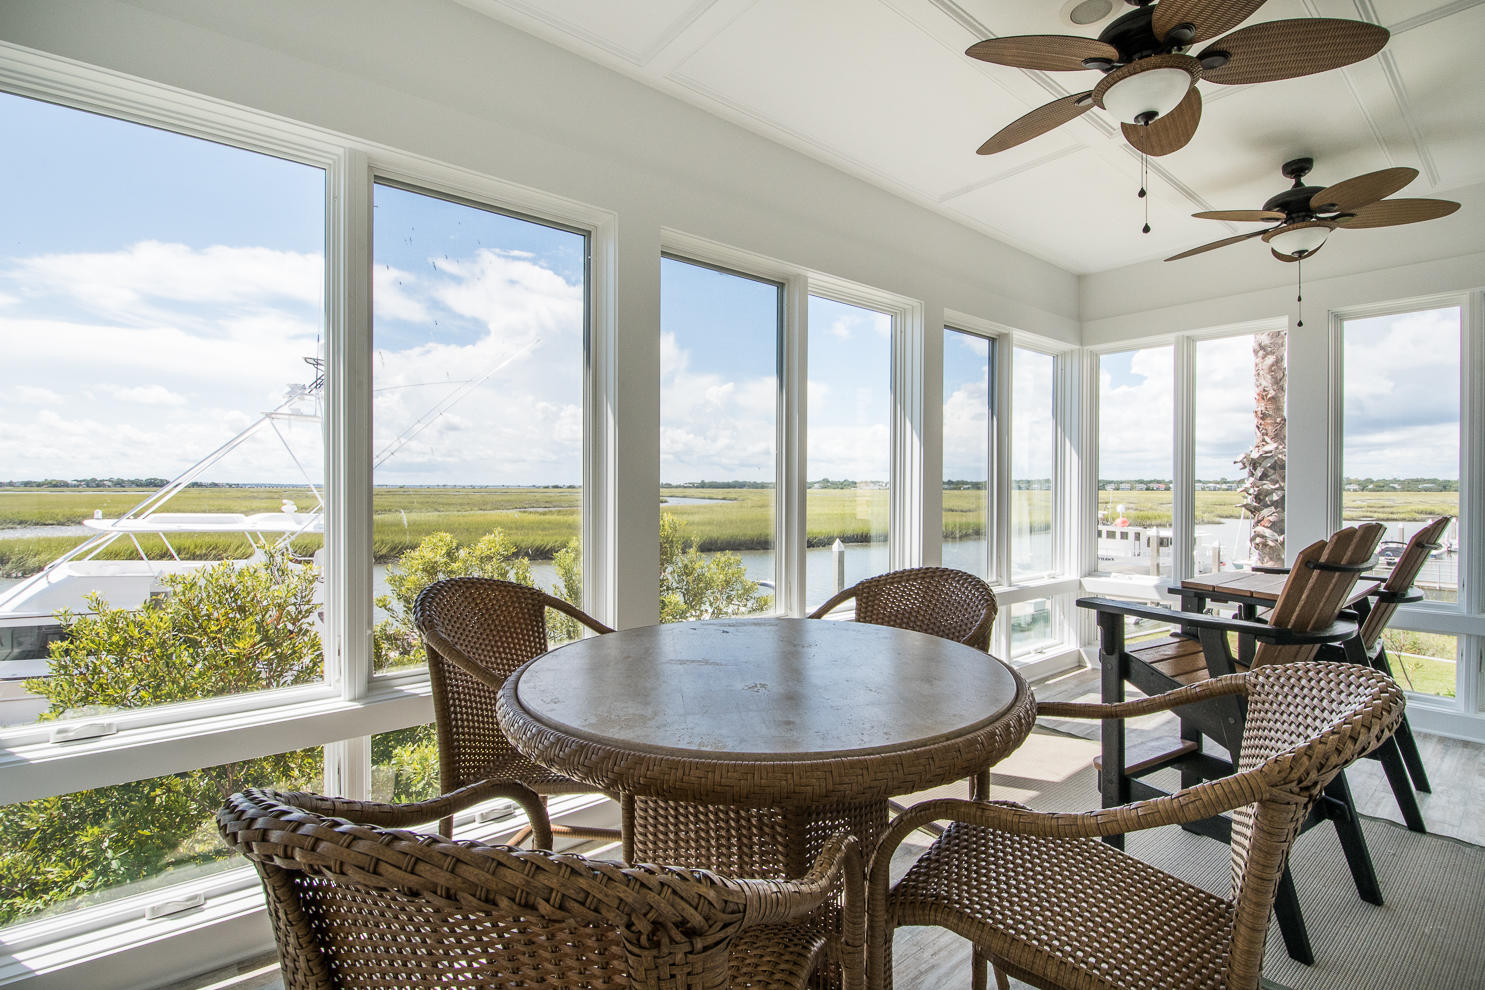 Tolers Cove Homes For Sale - B-4 & B-5 Tolers Cove Marina 70ft + Home, Mount Pleasant, SC - 25